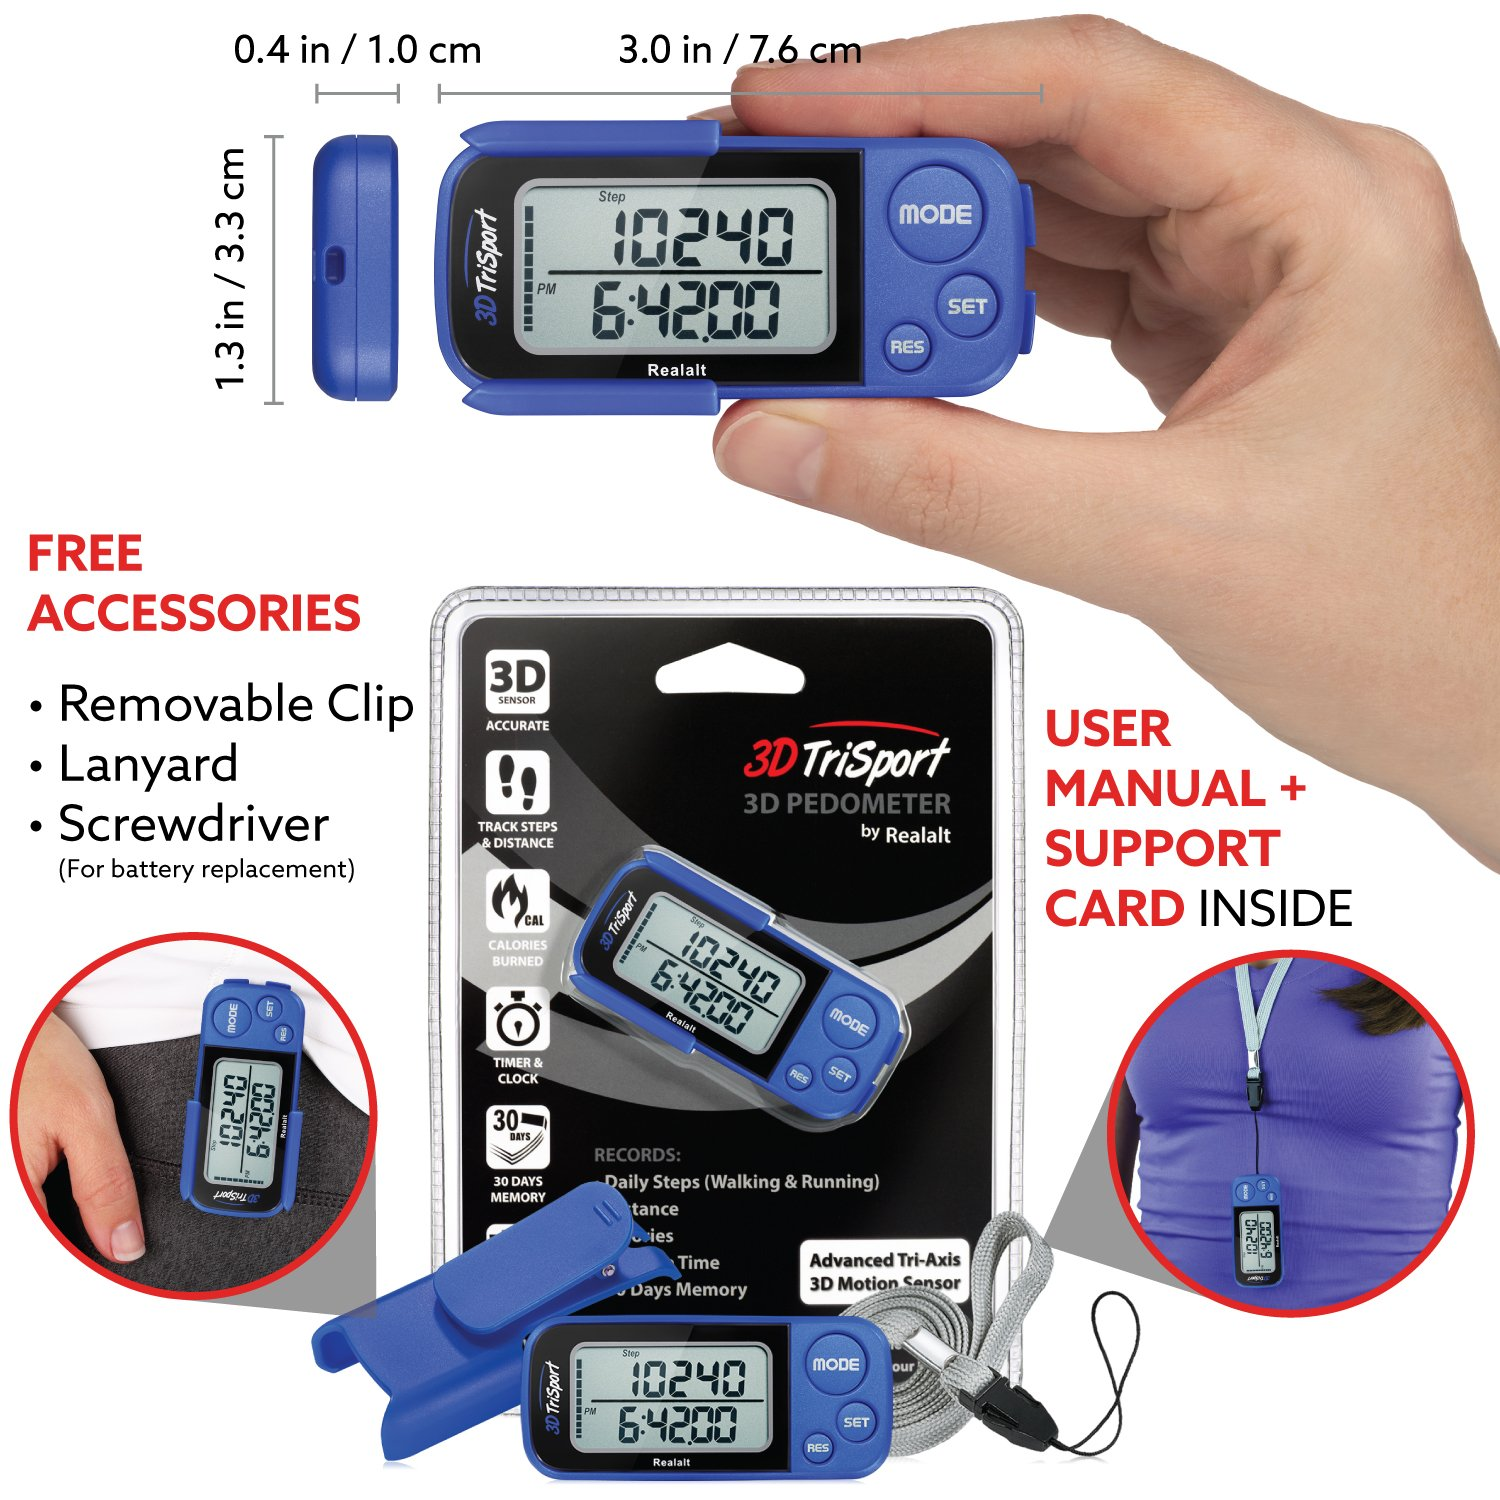 3dtrisport walking 3d pedometer user manual